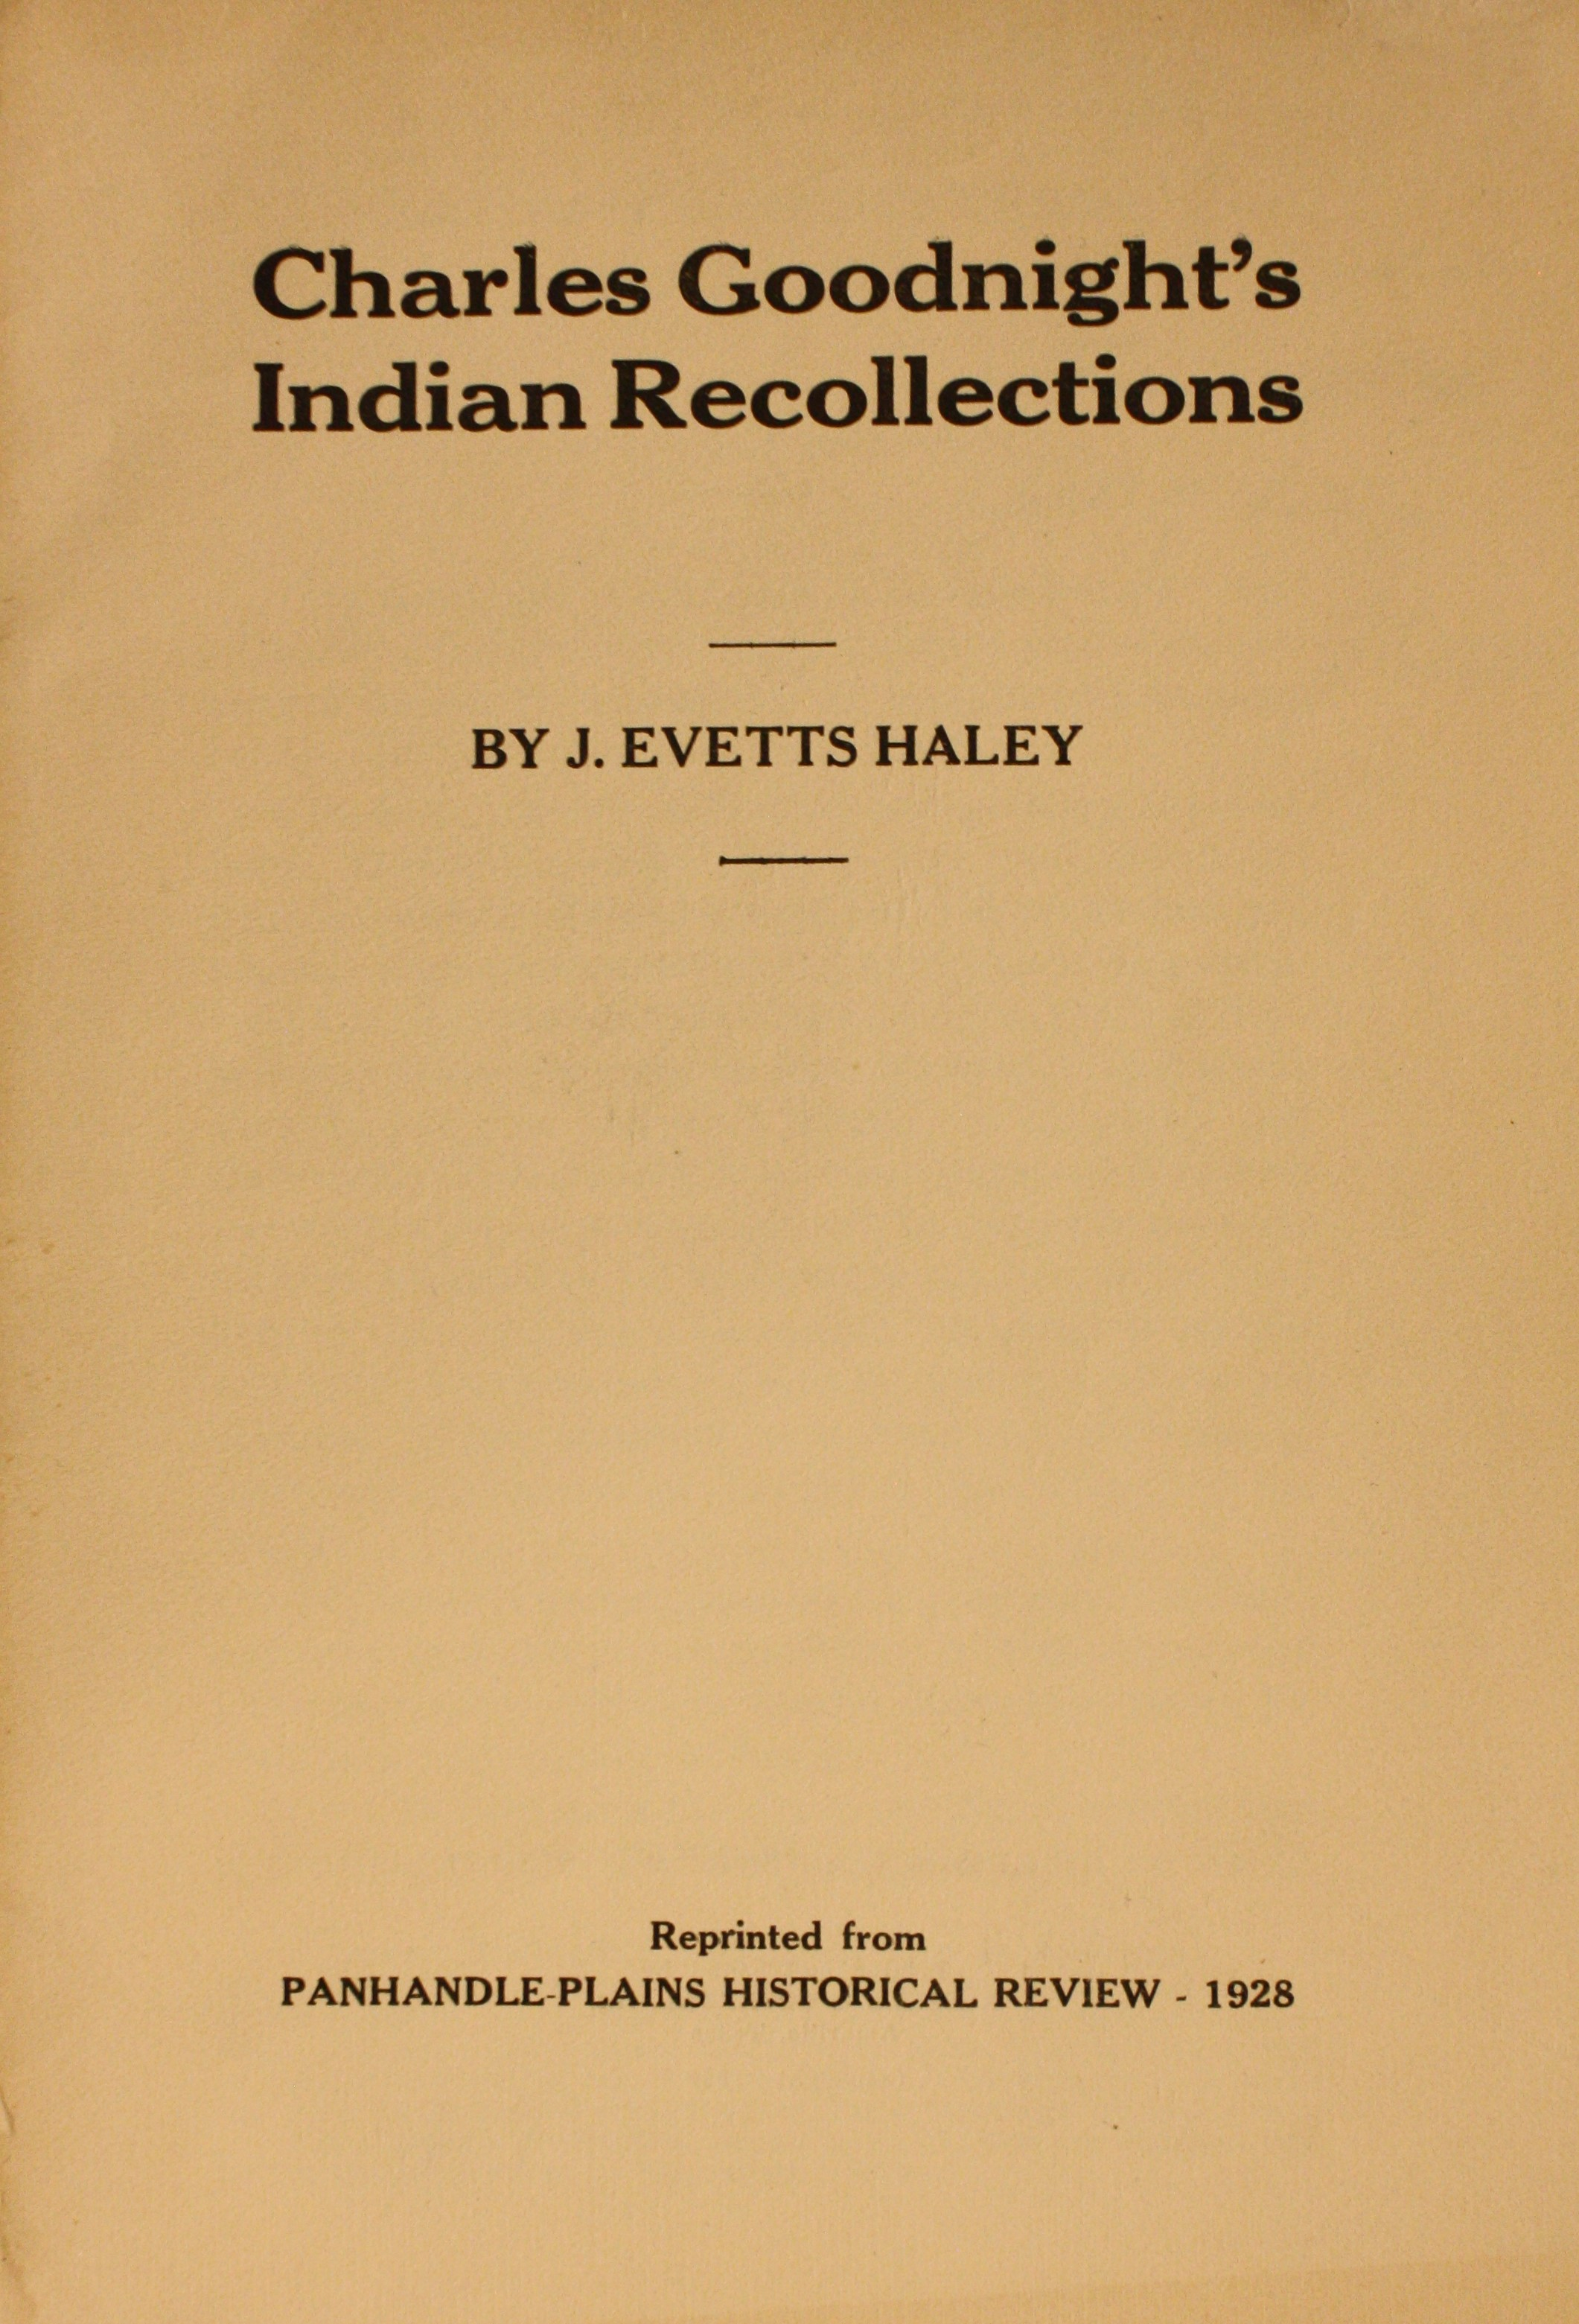 Image for Charles Goodnight's Indian Recollections